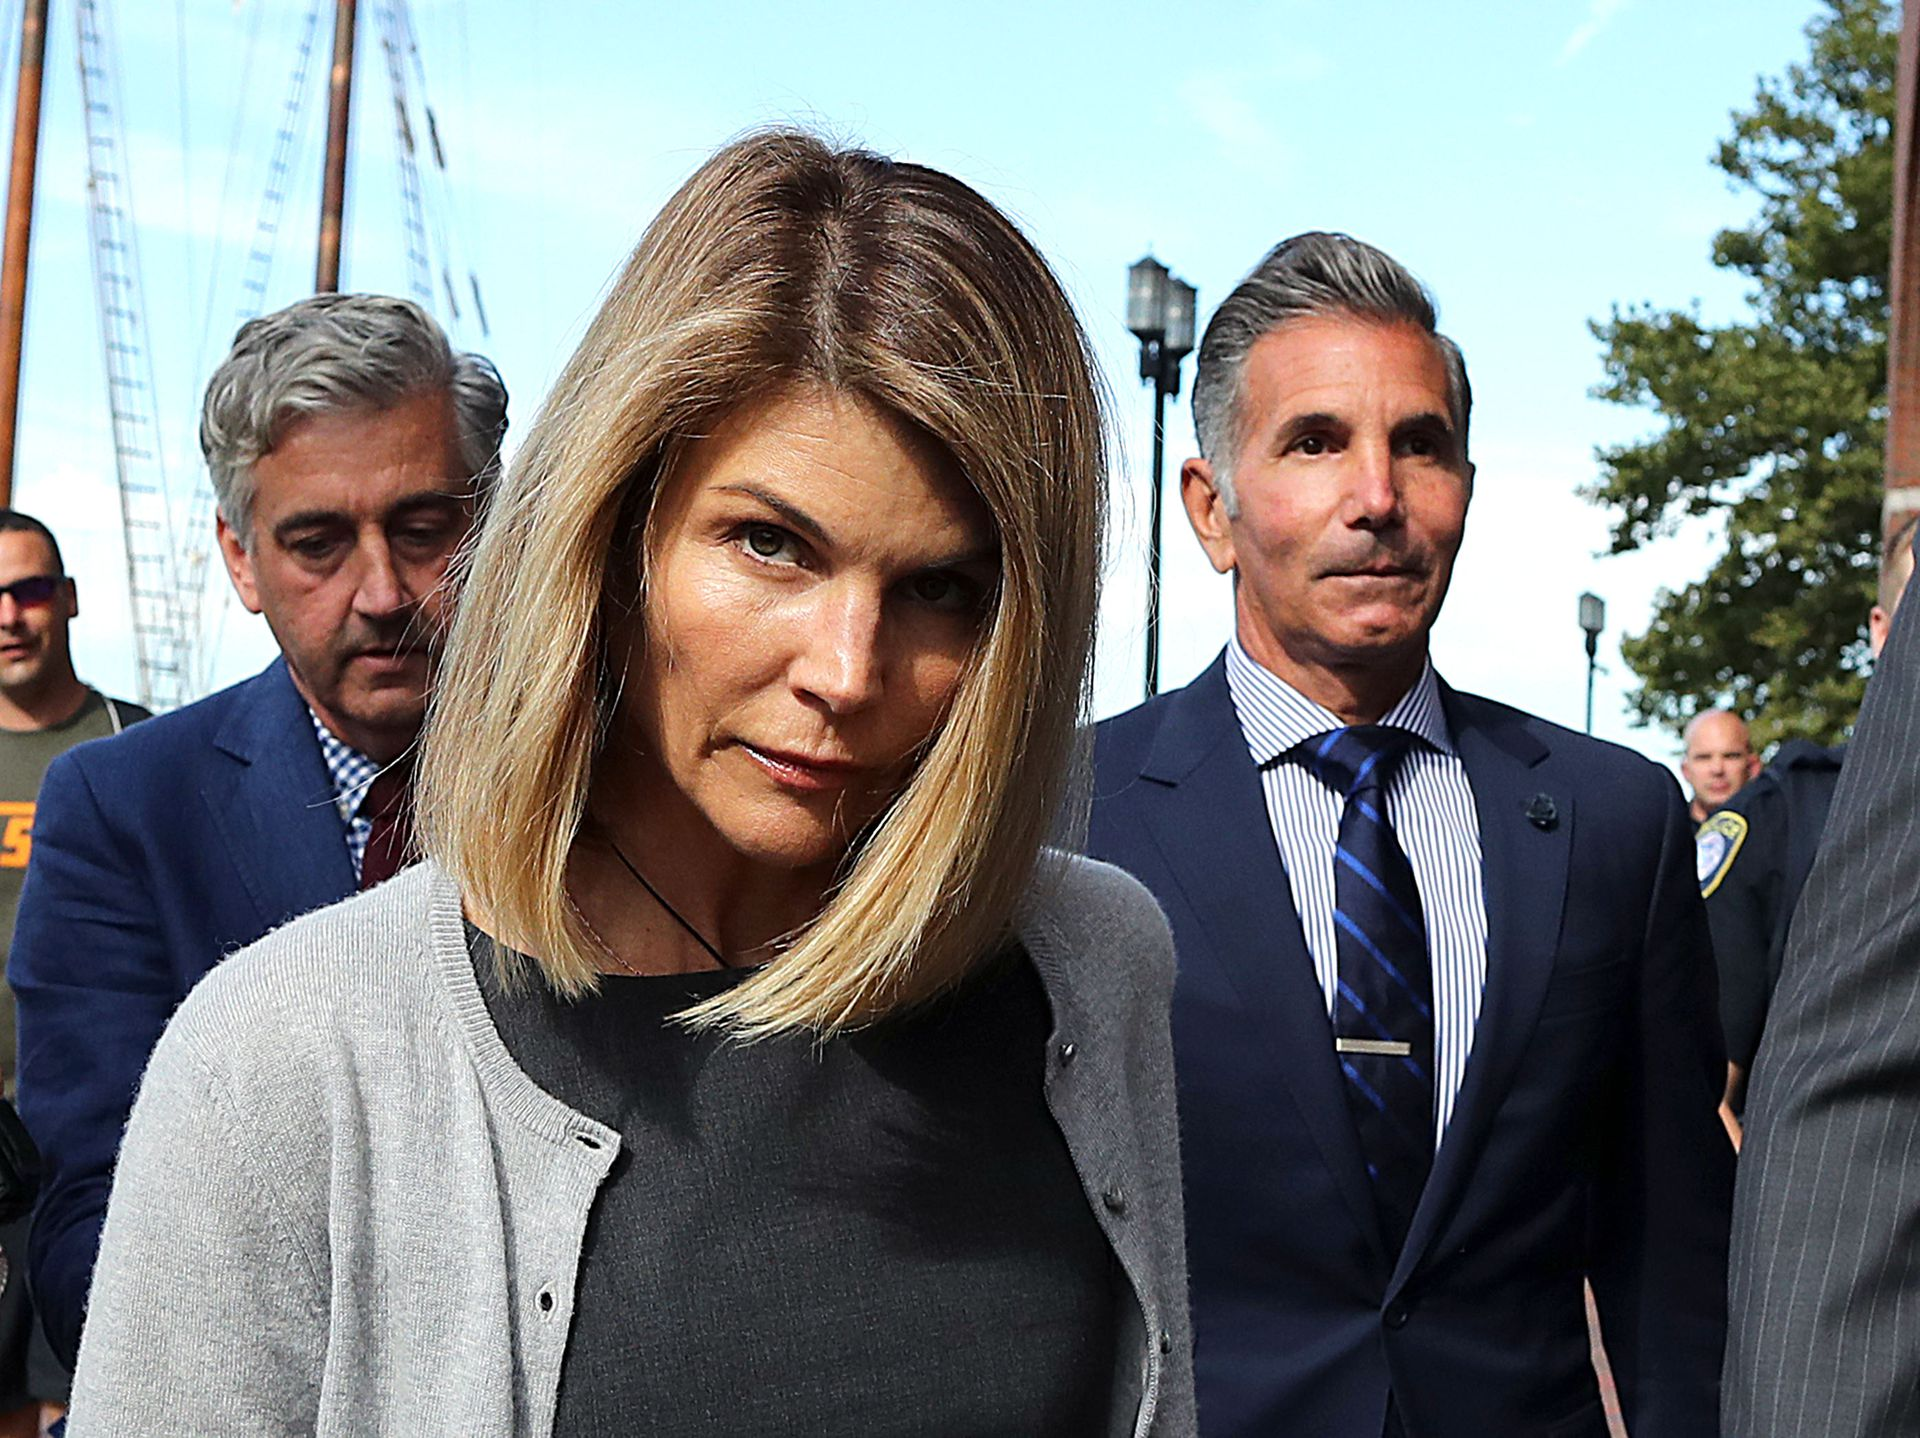 Timeline: The major developments in the college admissions scandal